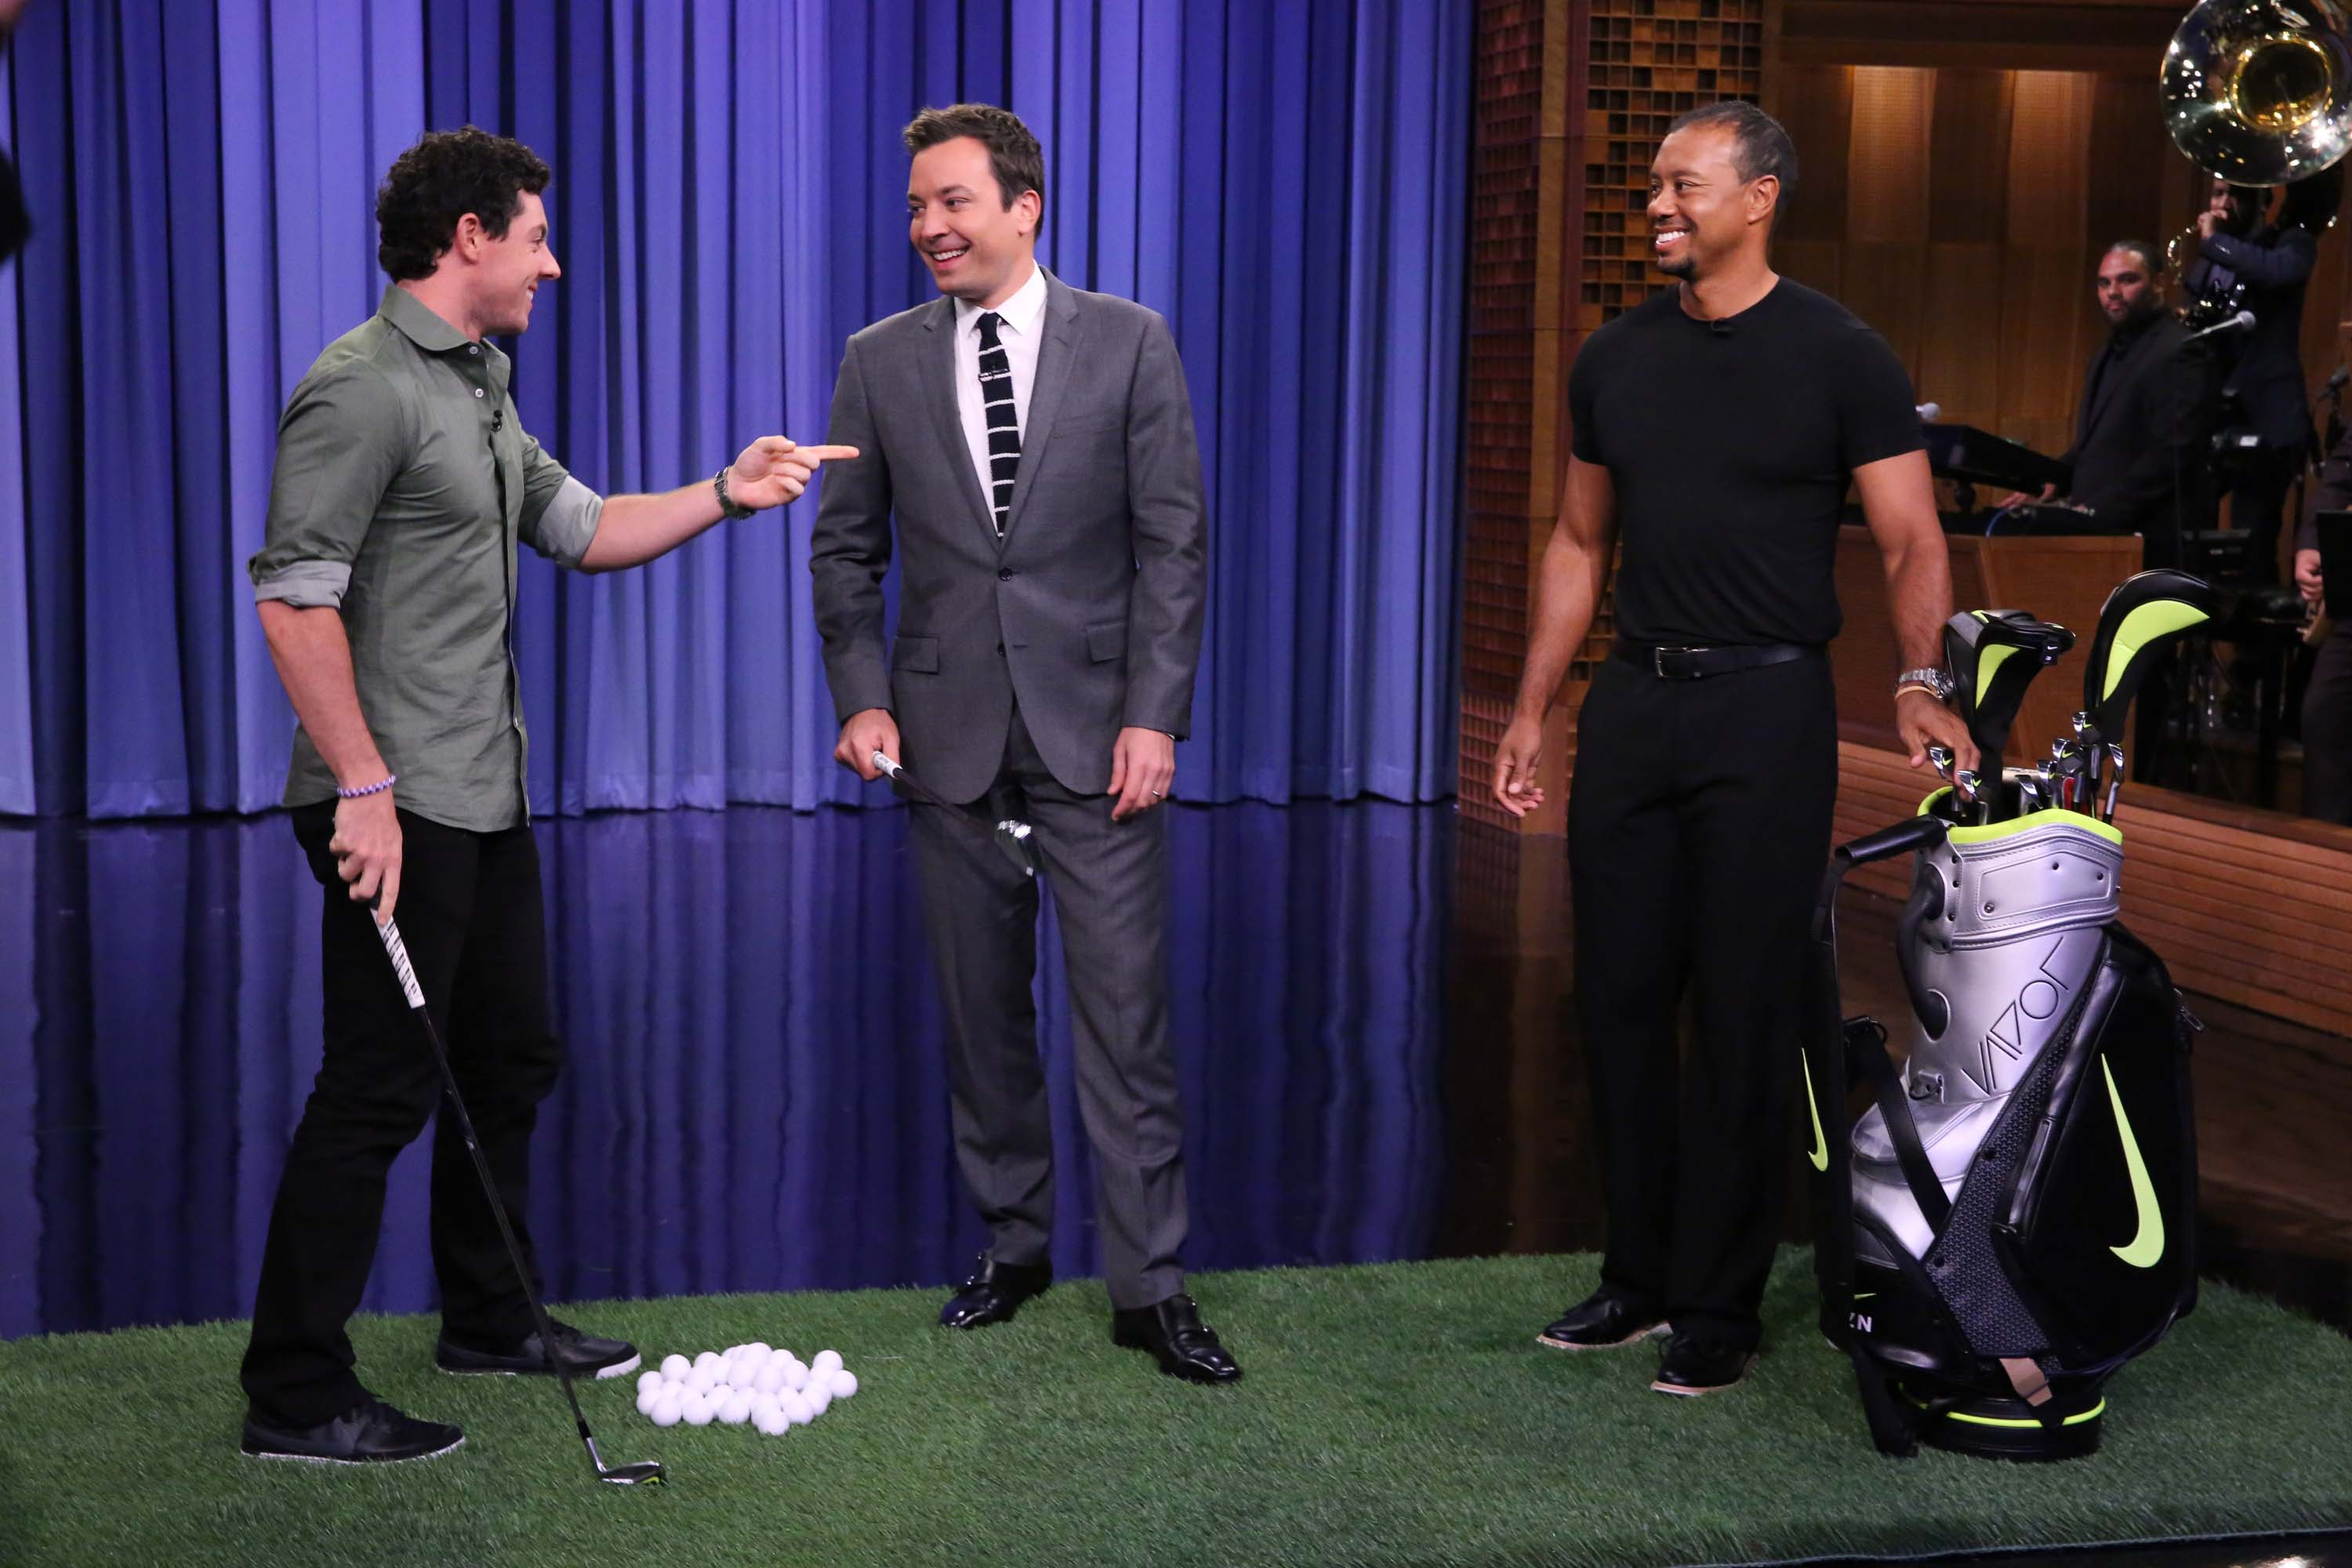 Tiger Woods, Rory Mcllroy and Jimmy Fallon